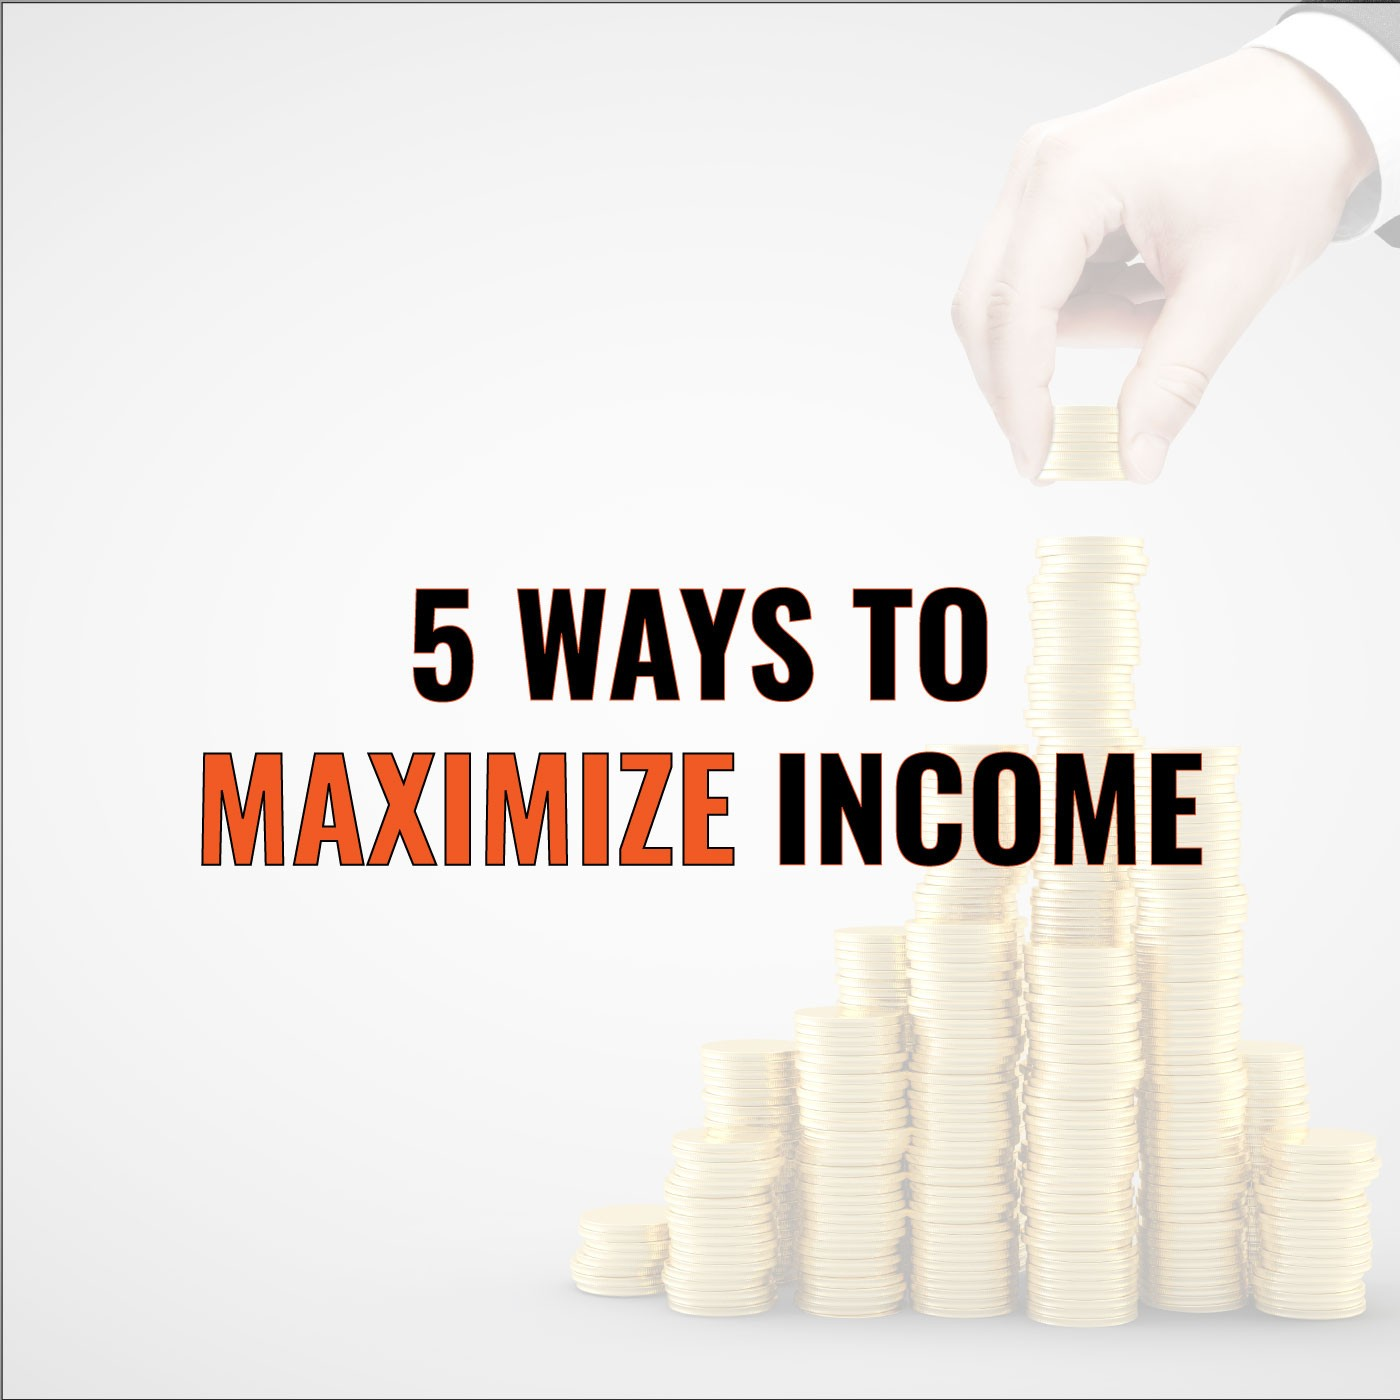 Brian Burns on 5 Ways to Maximize Income